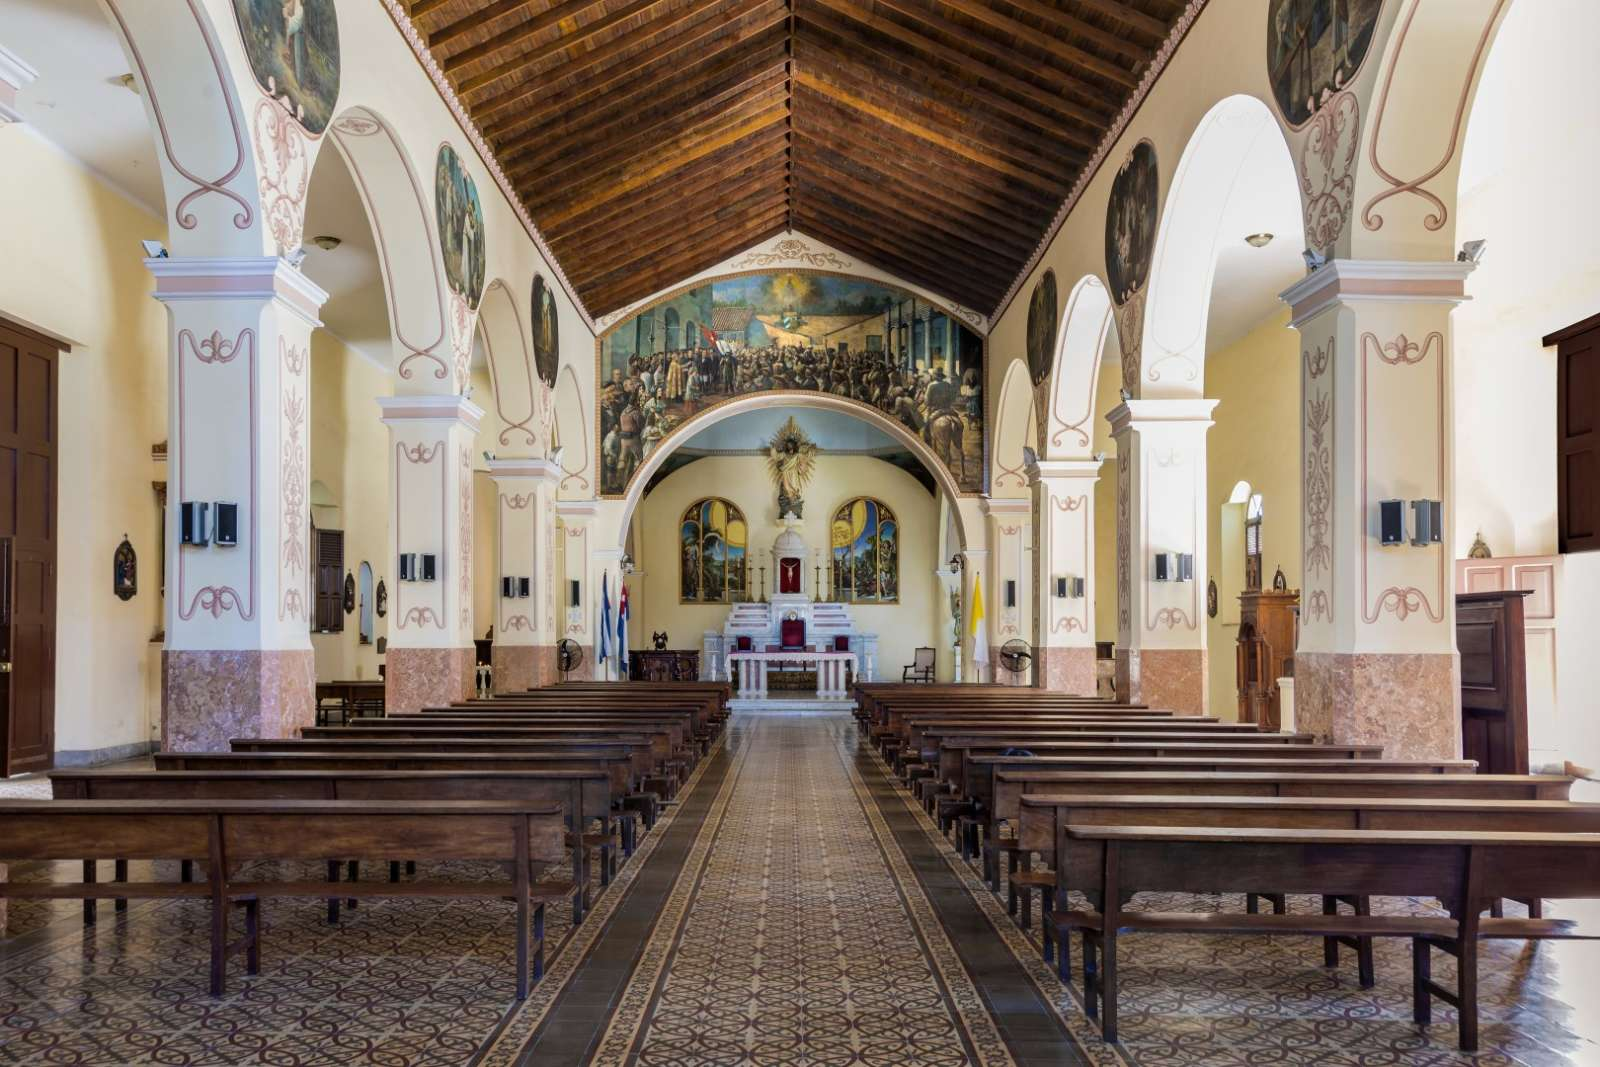 Interior of Bayamo cathedral in Cuba